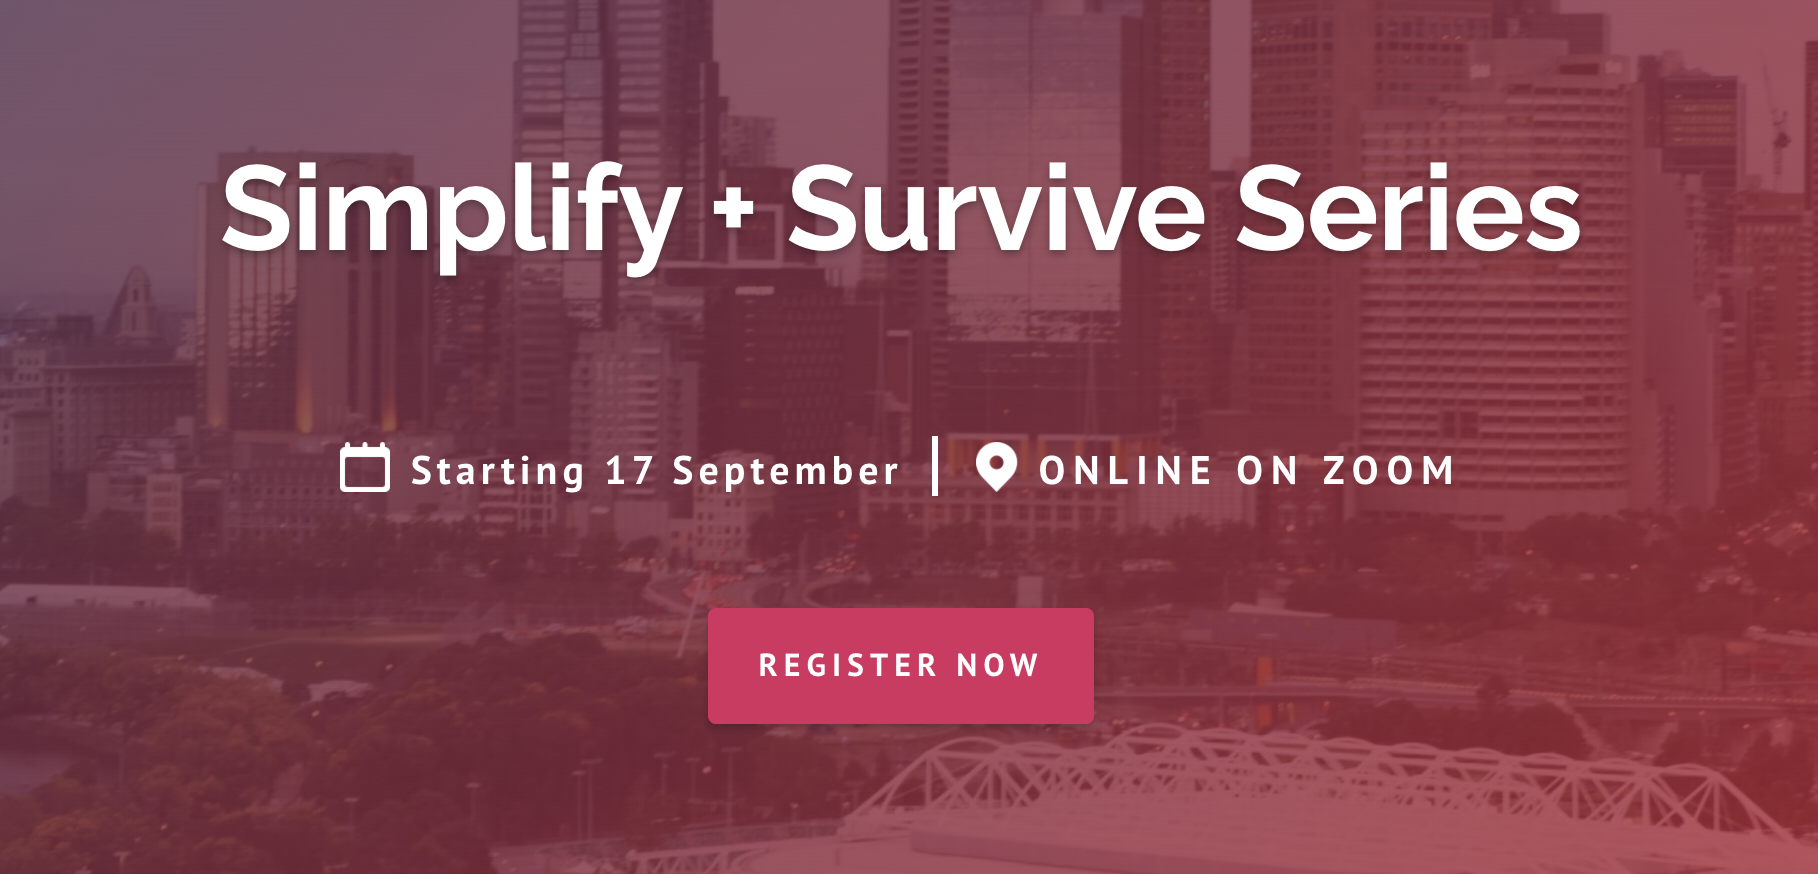 Simplify and Survive Series Melbourne